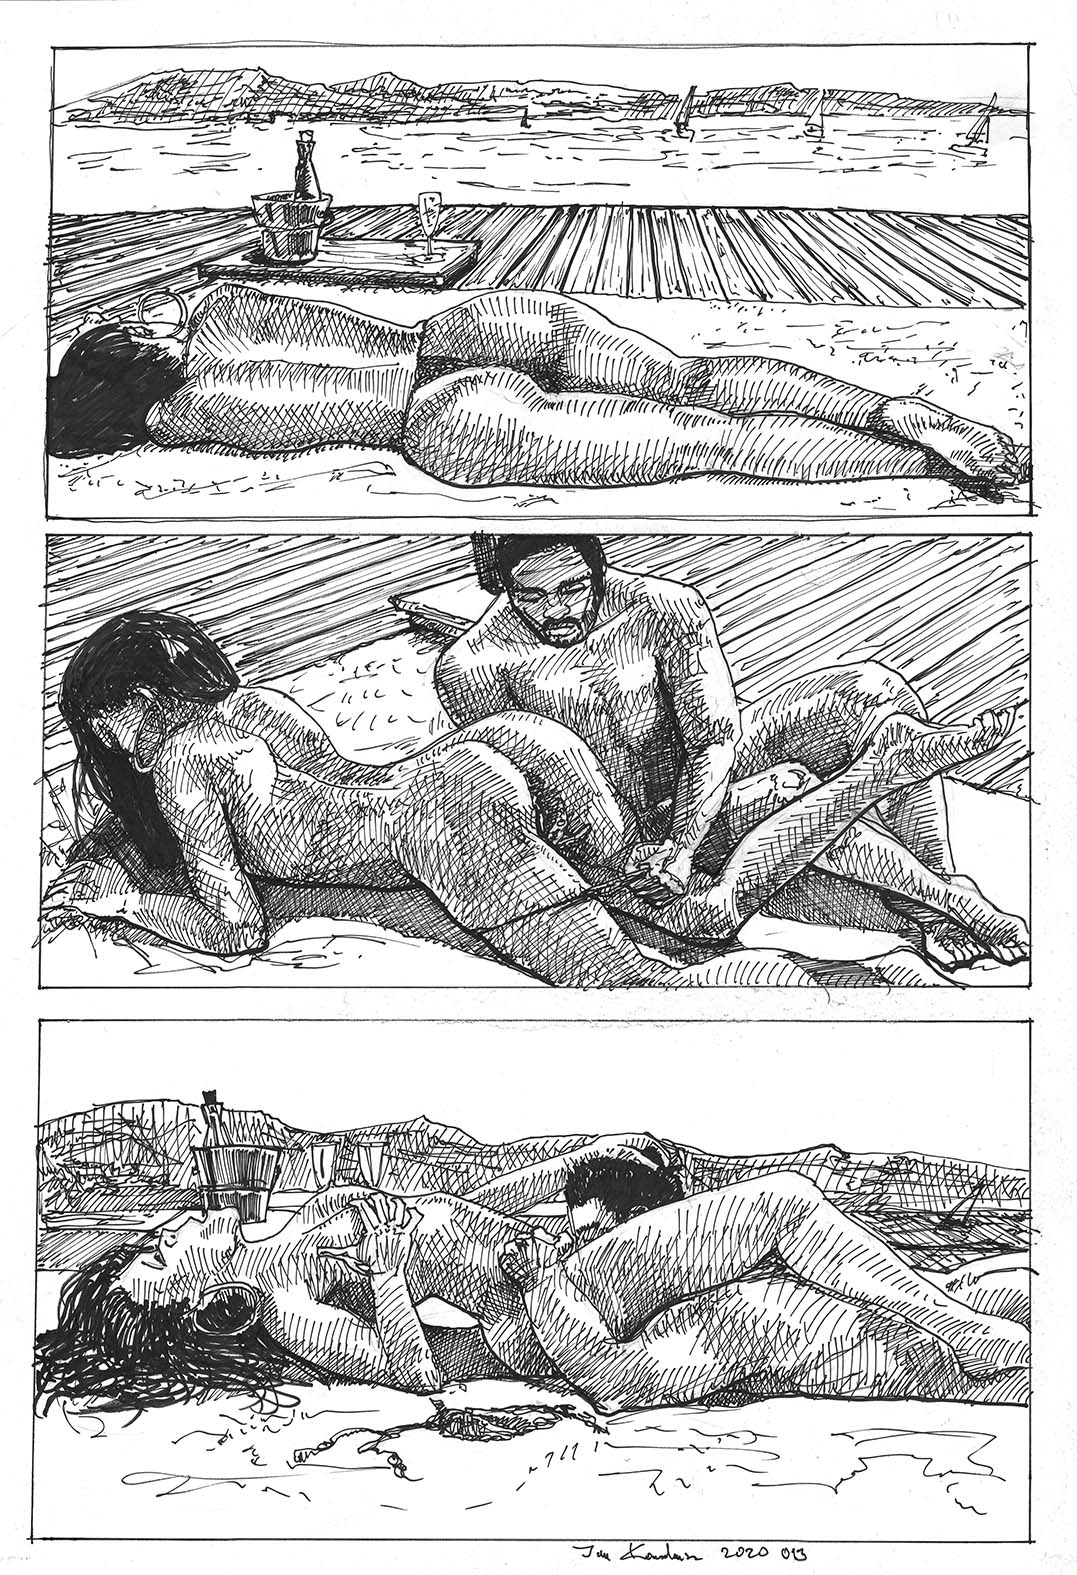 short erotic graphic story for a customer by jan kowalewicz jandrawserotica